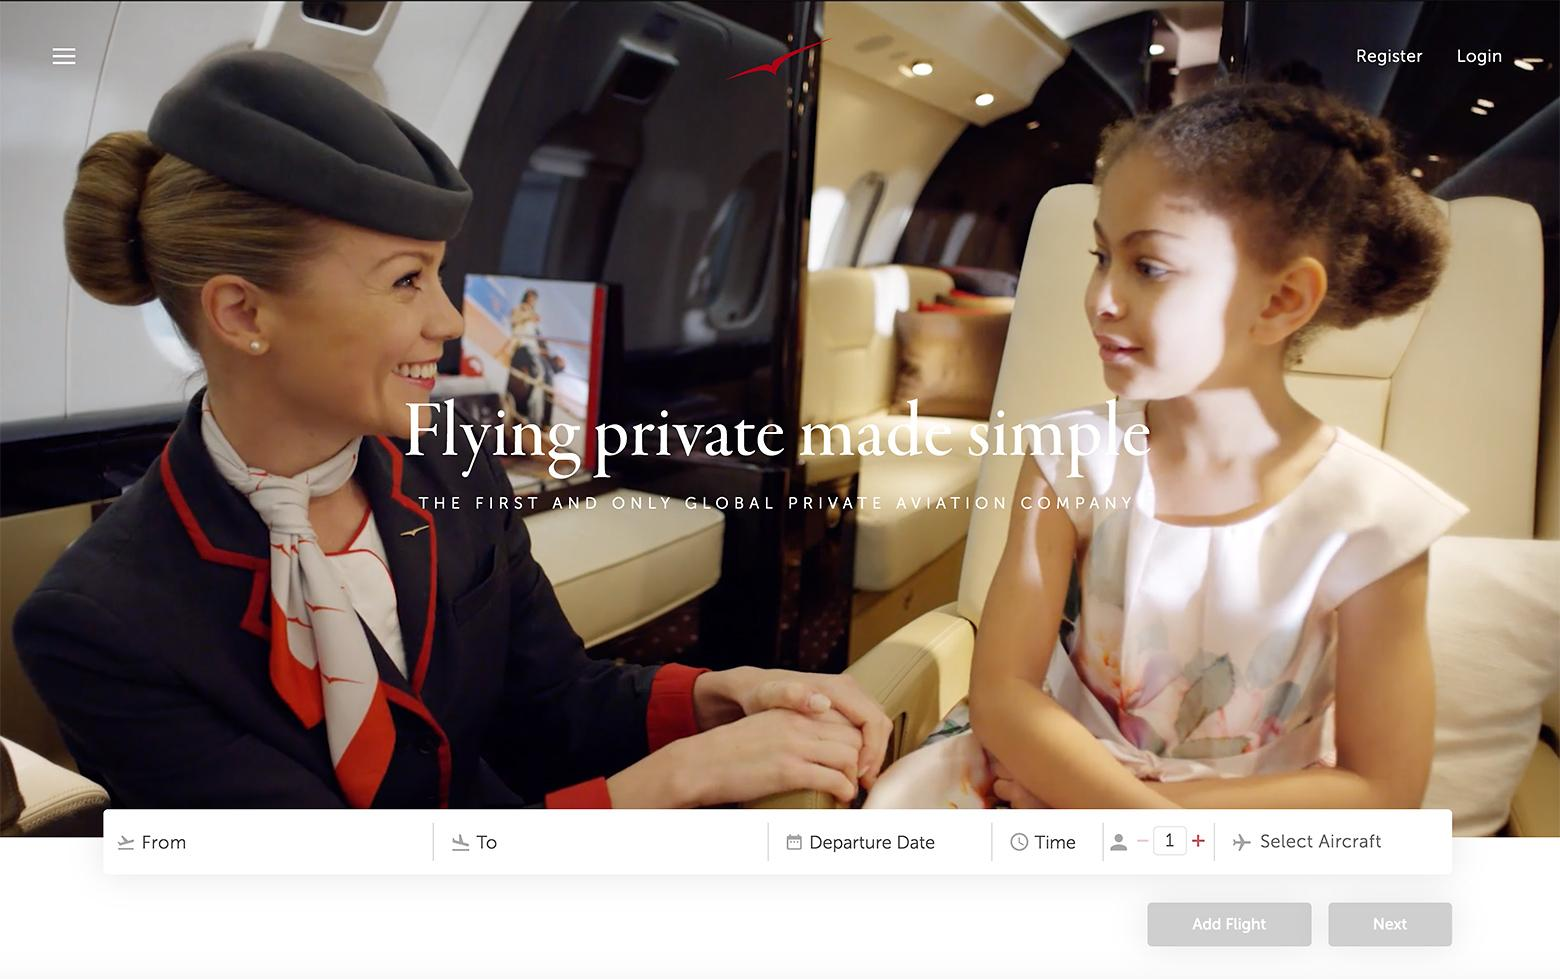 VistaJet is using landing page conversion best practices